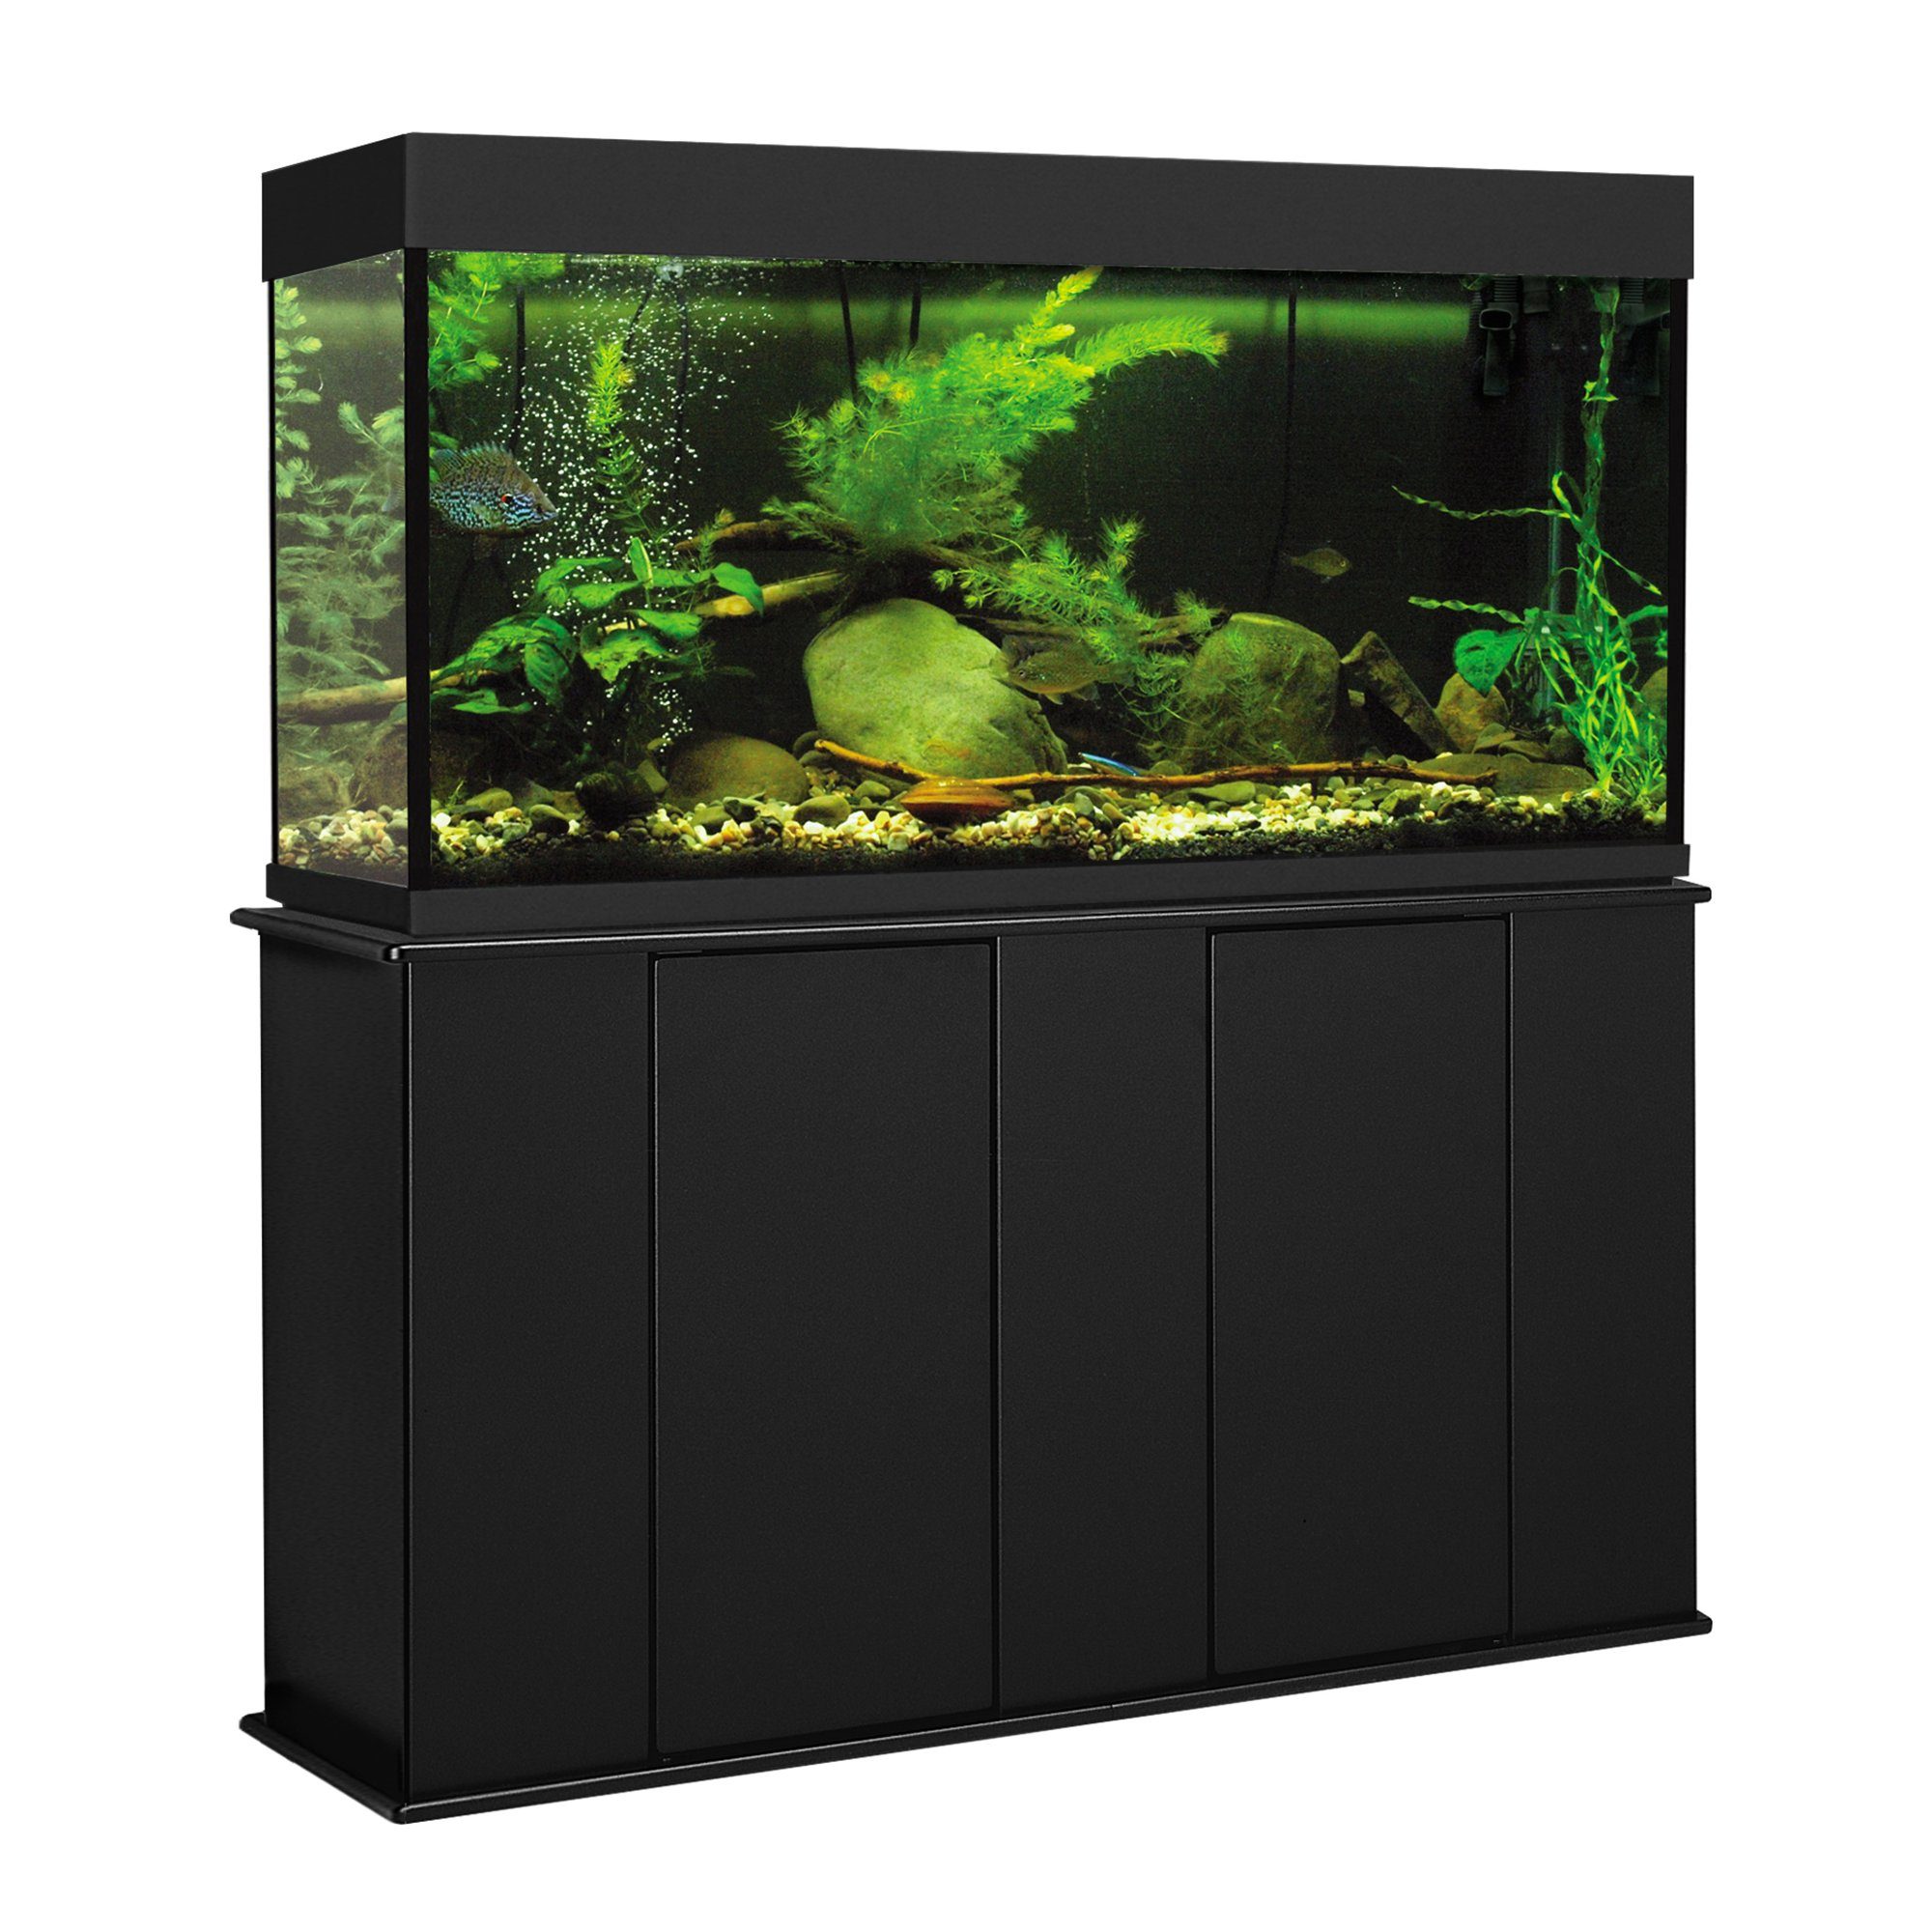 Aquatic fundamentals 55 gallon upright aquarium stand petco for Small fish tanks for sale